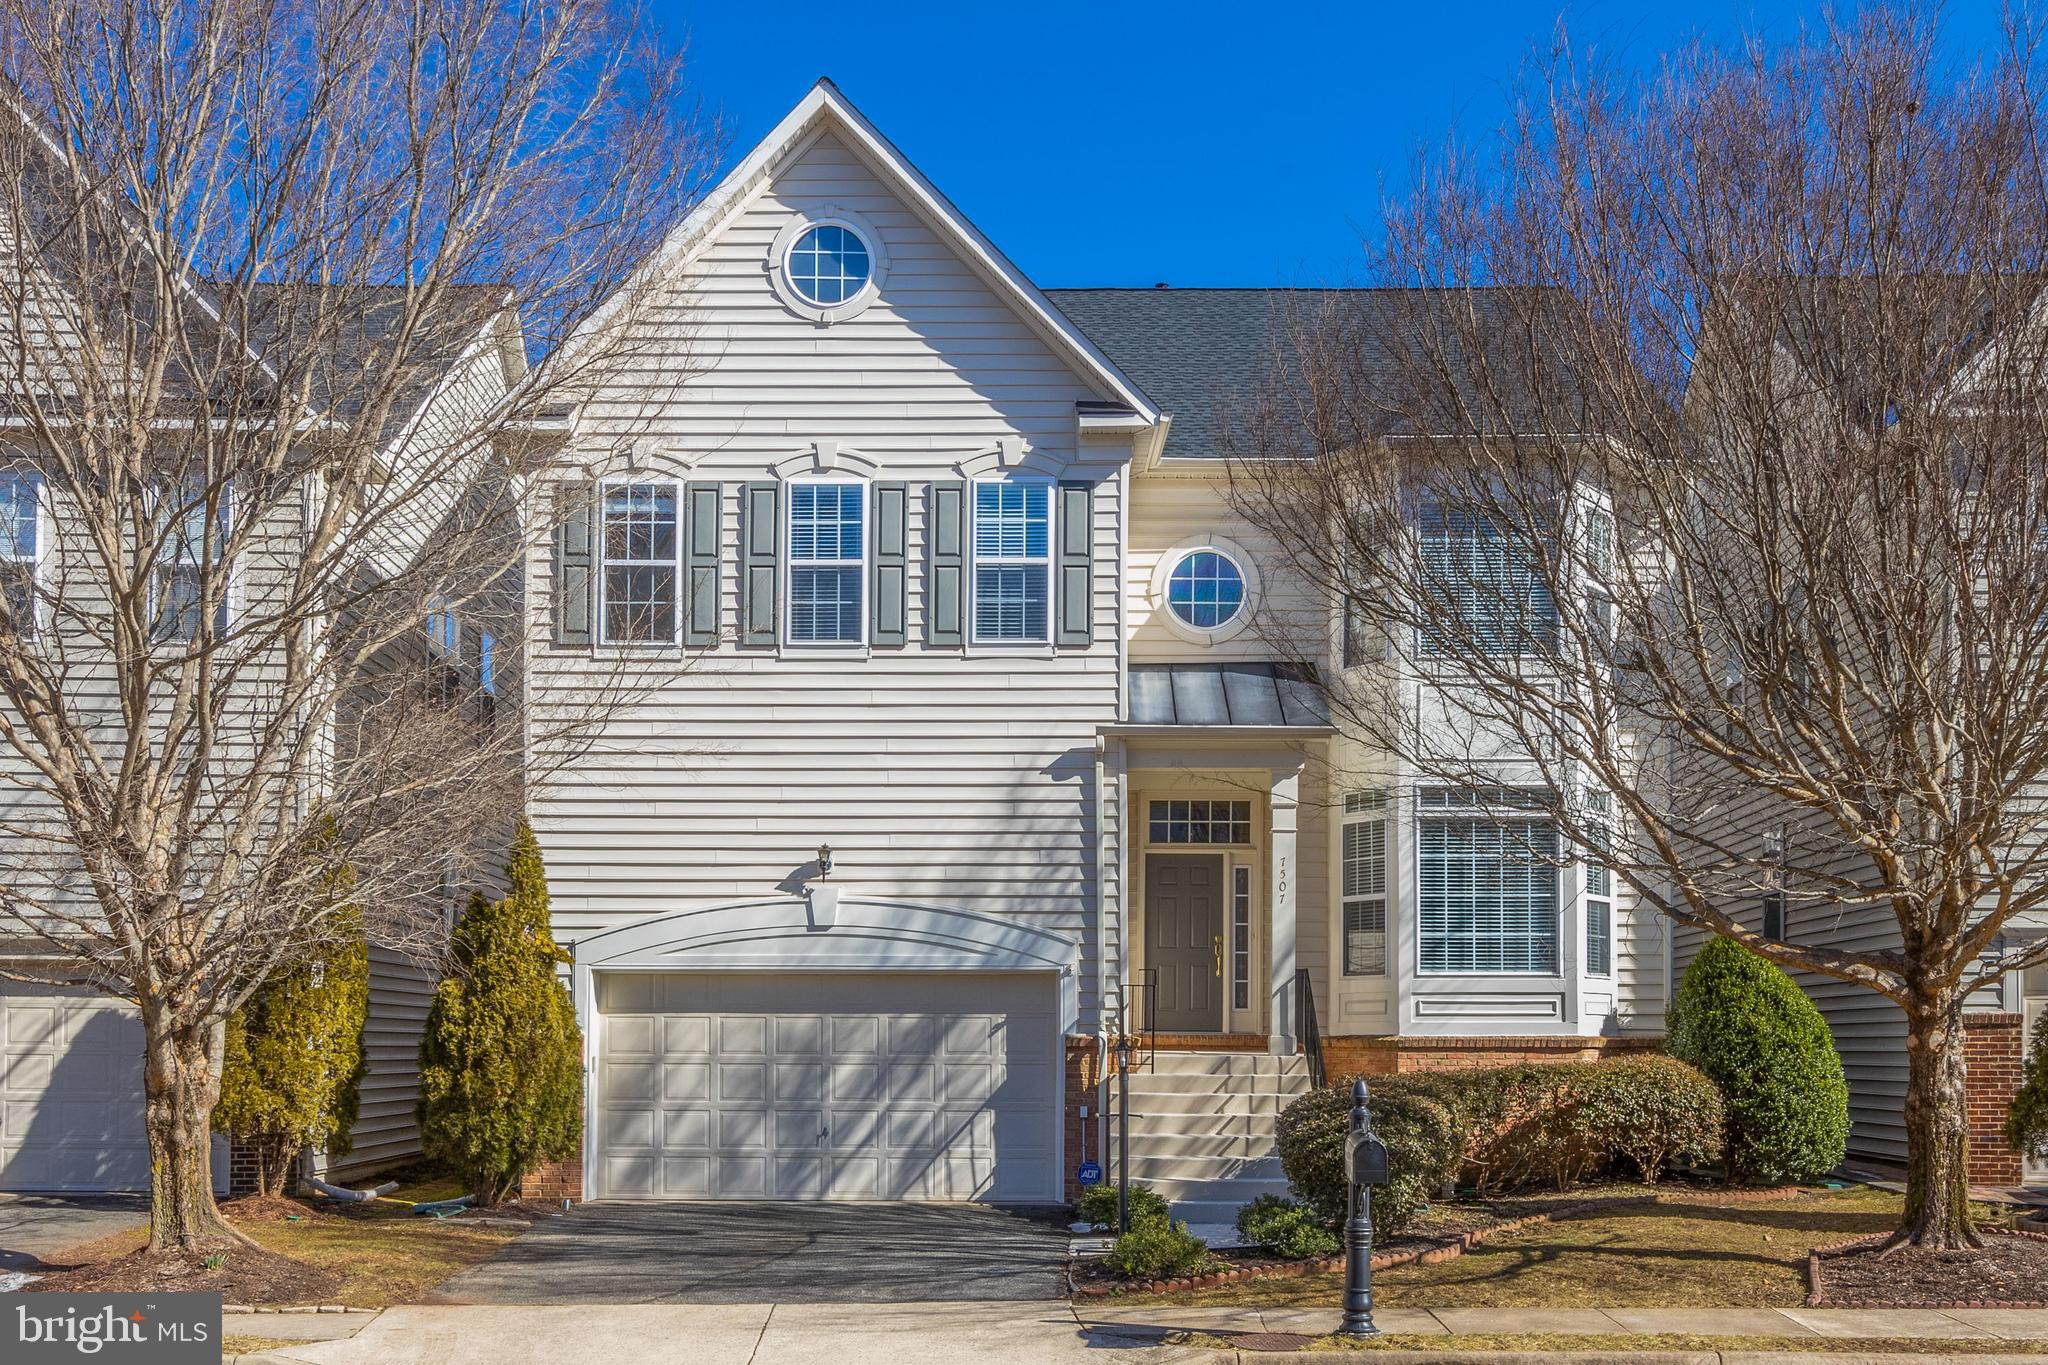 Beautiful, open and bright 5BR, 3.5 BA, 2 car garage popular Pinewood model in the Grove at Huntley